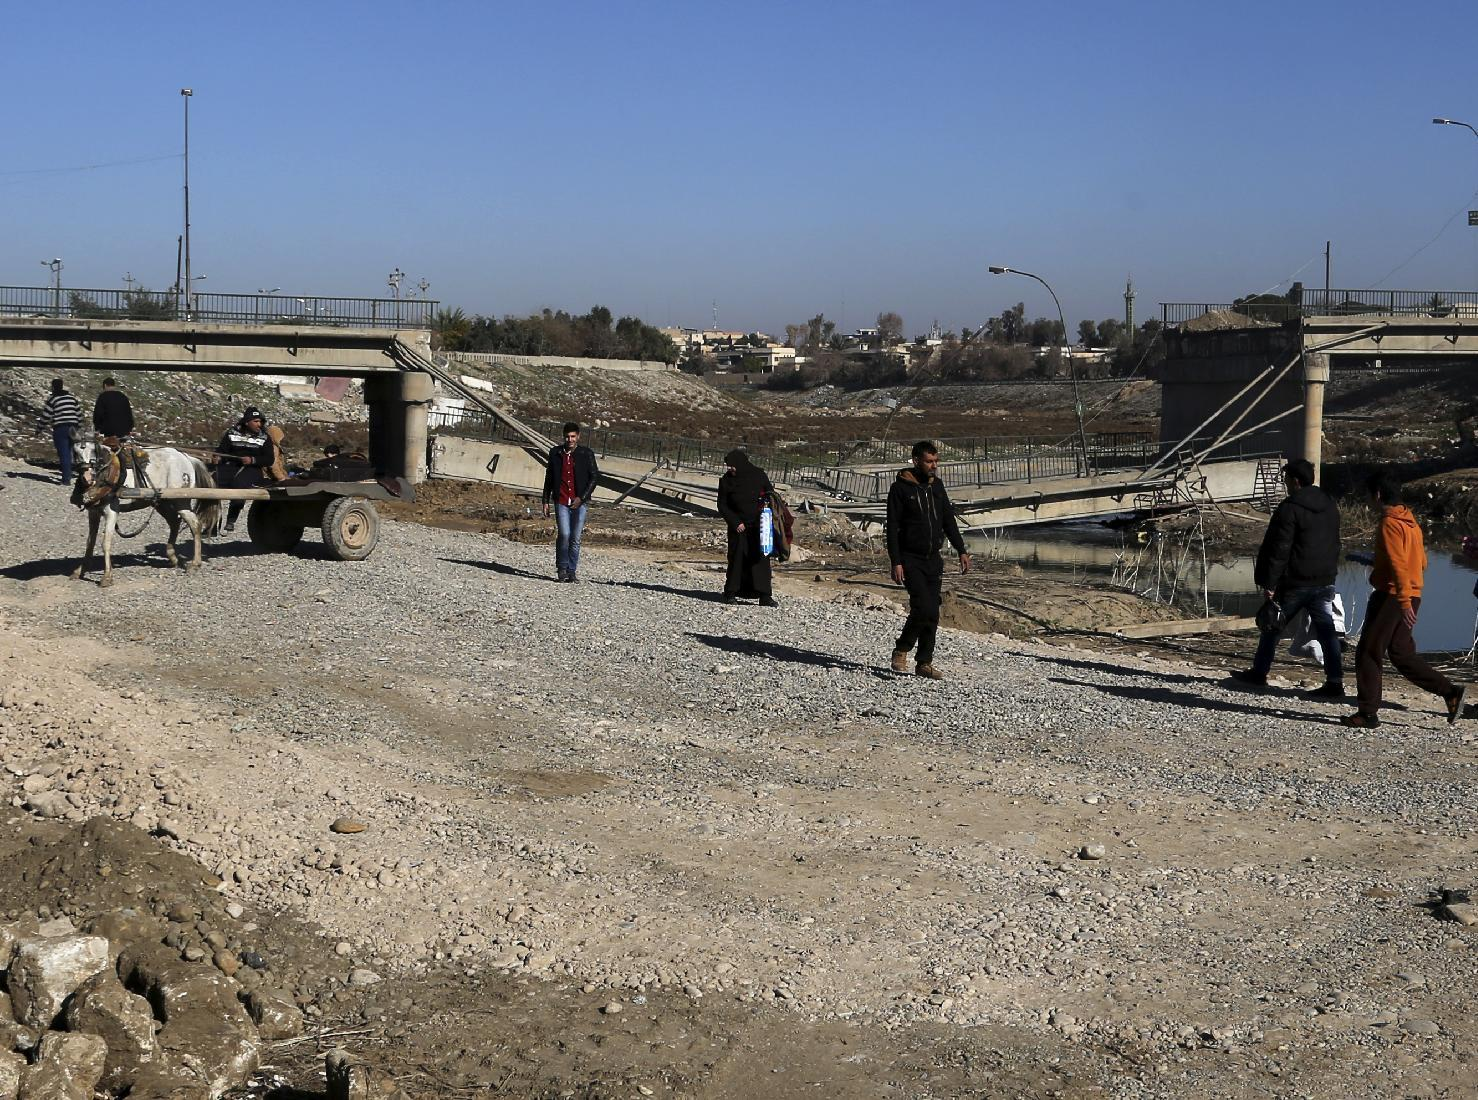 Civilians cross on a makeshift river next to a bridge destroyed by Islamic State militants in a neighborhood recently liberated from Islamic State on the eastern side of Mosul, Iraq, Thursday, Jan. 12, 2017. Small stalls and carts have sprung up outside the bombed-out restaurants and cafes in eastern Mosul, selling fresh vegetables, cigarettes and cellphones to the thousands of civilians still living in neighborhoods where the Iraqi military has driven out the extremists of the Islamic State group. (AP Photo/ Khalid Mohammed)